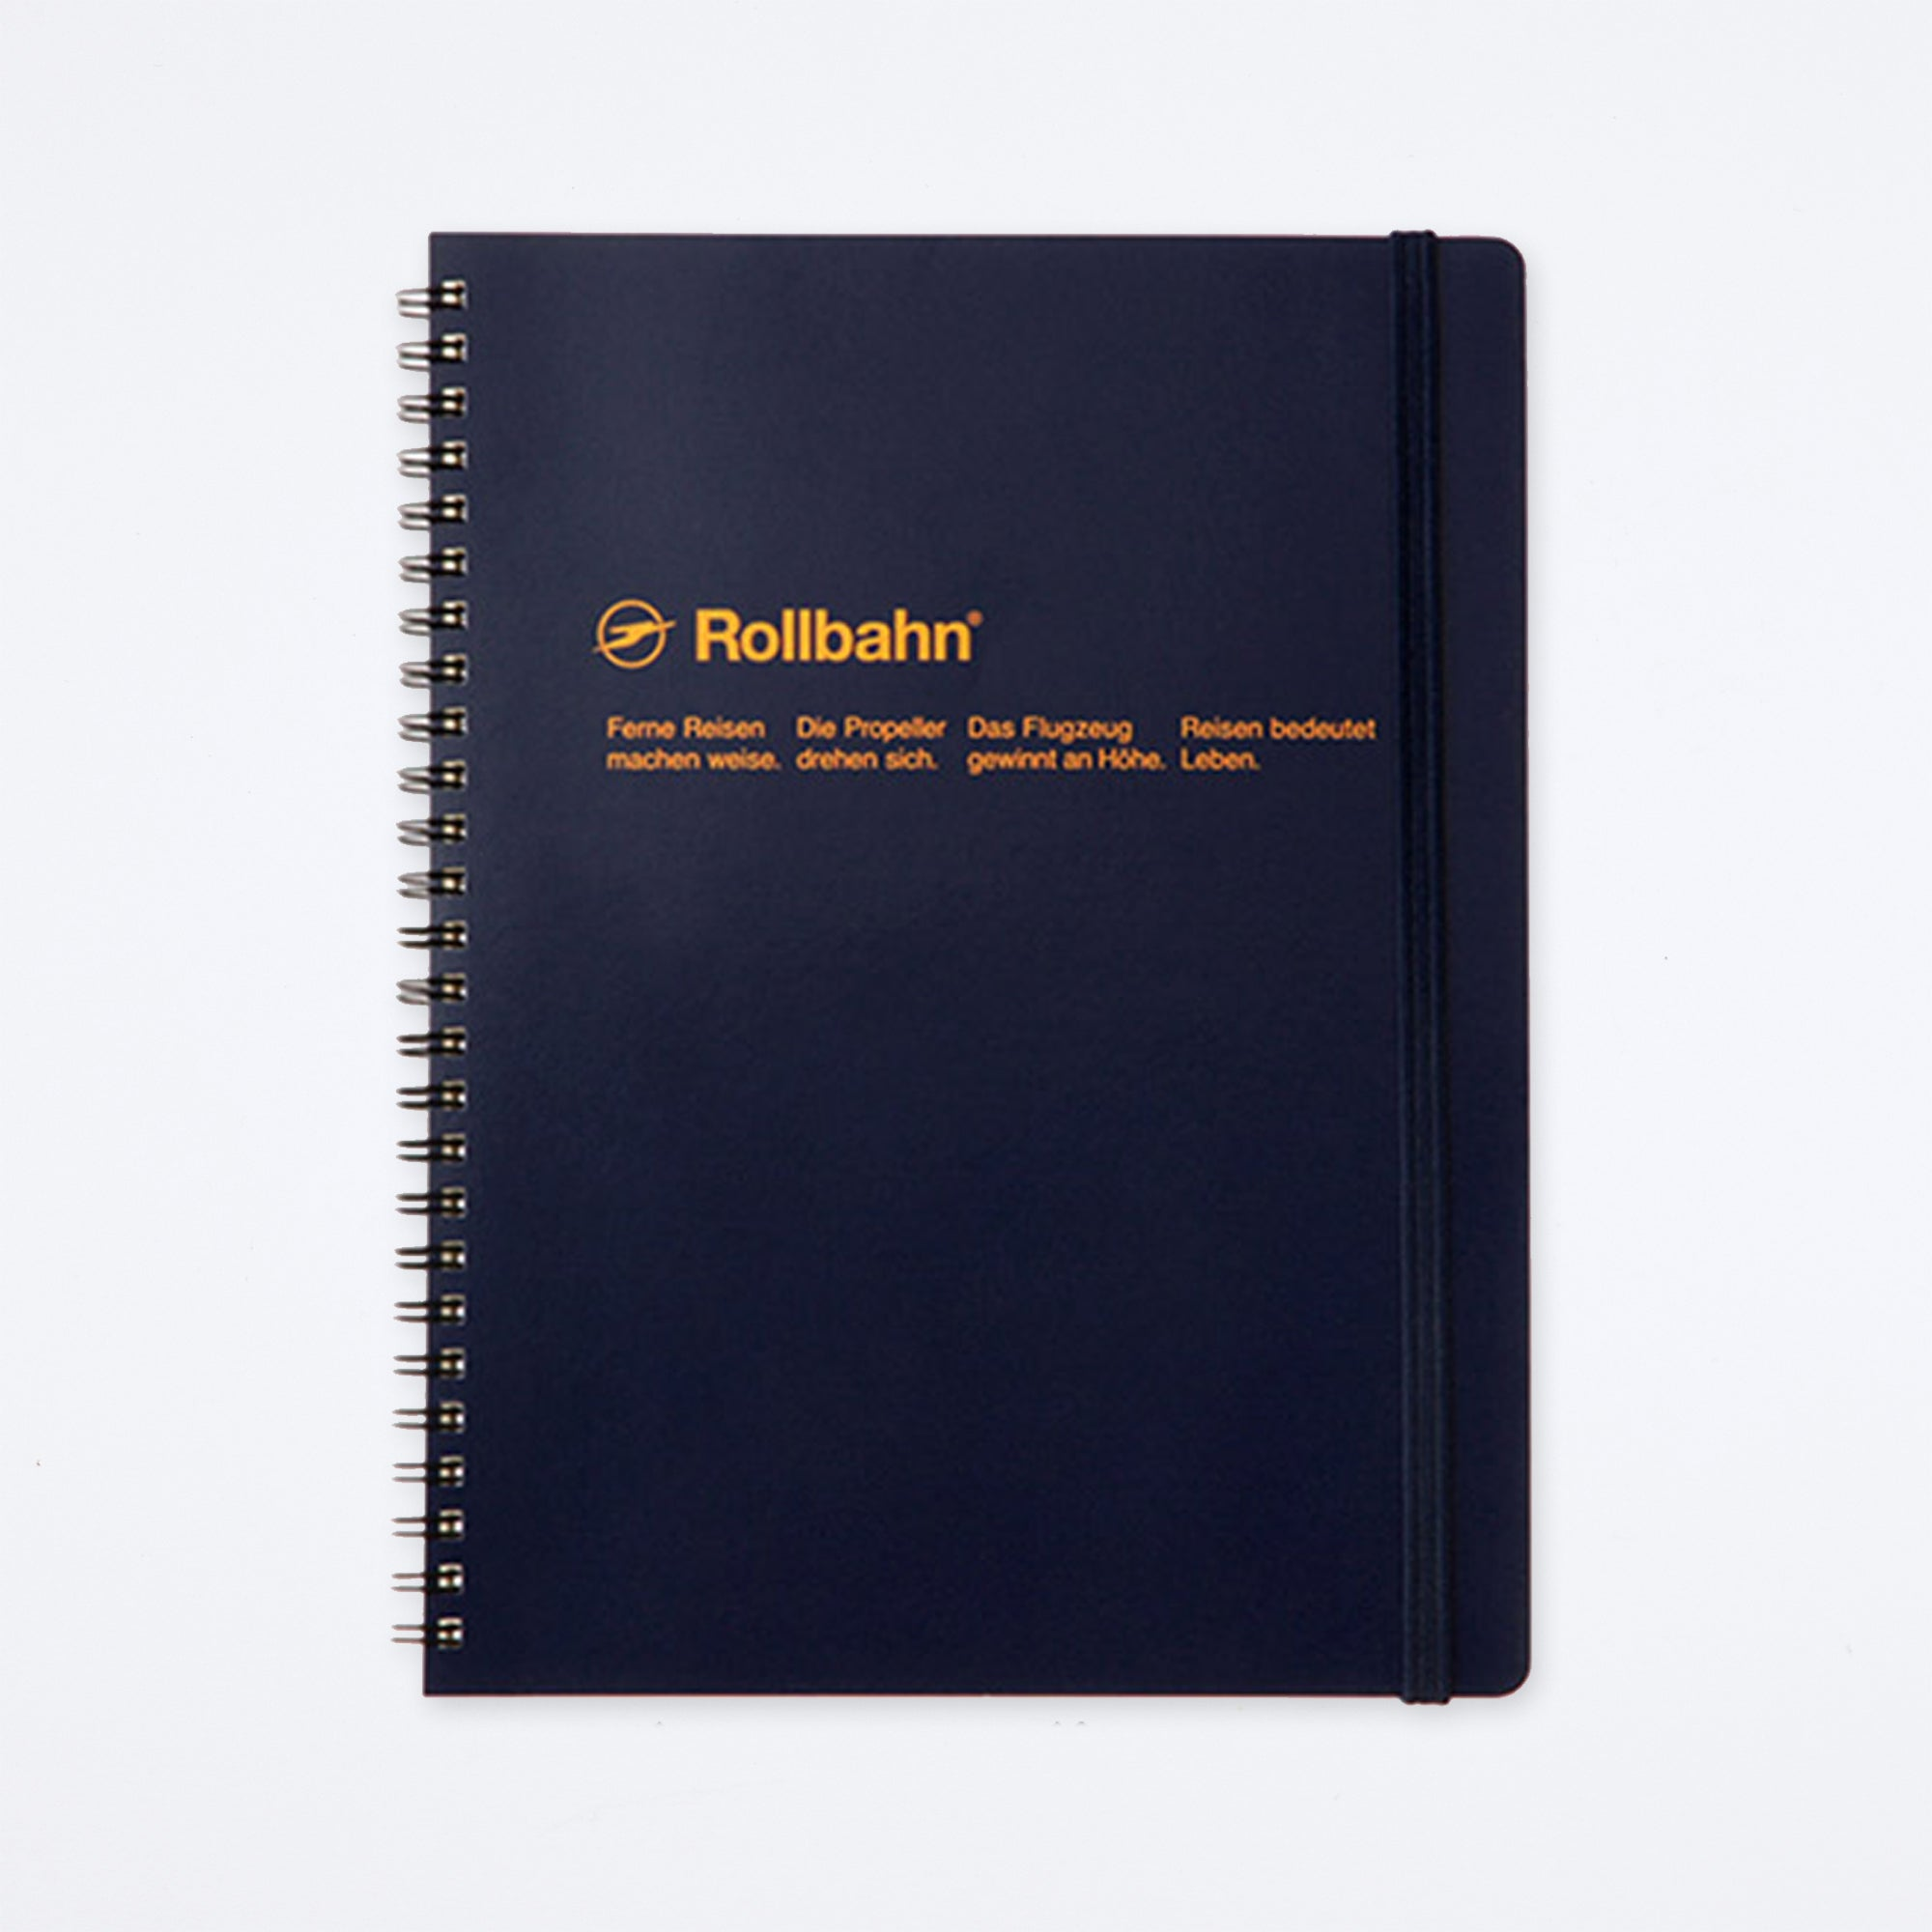 Rollbahn Spiral Extra Large Notebook